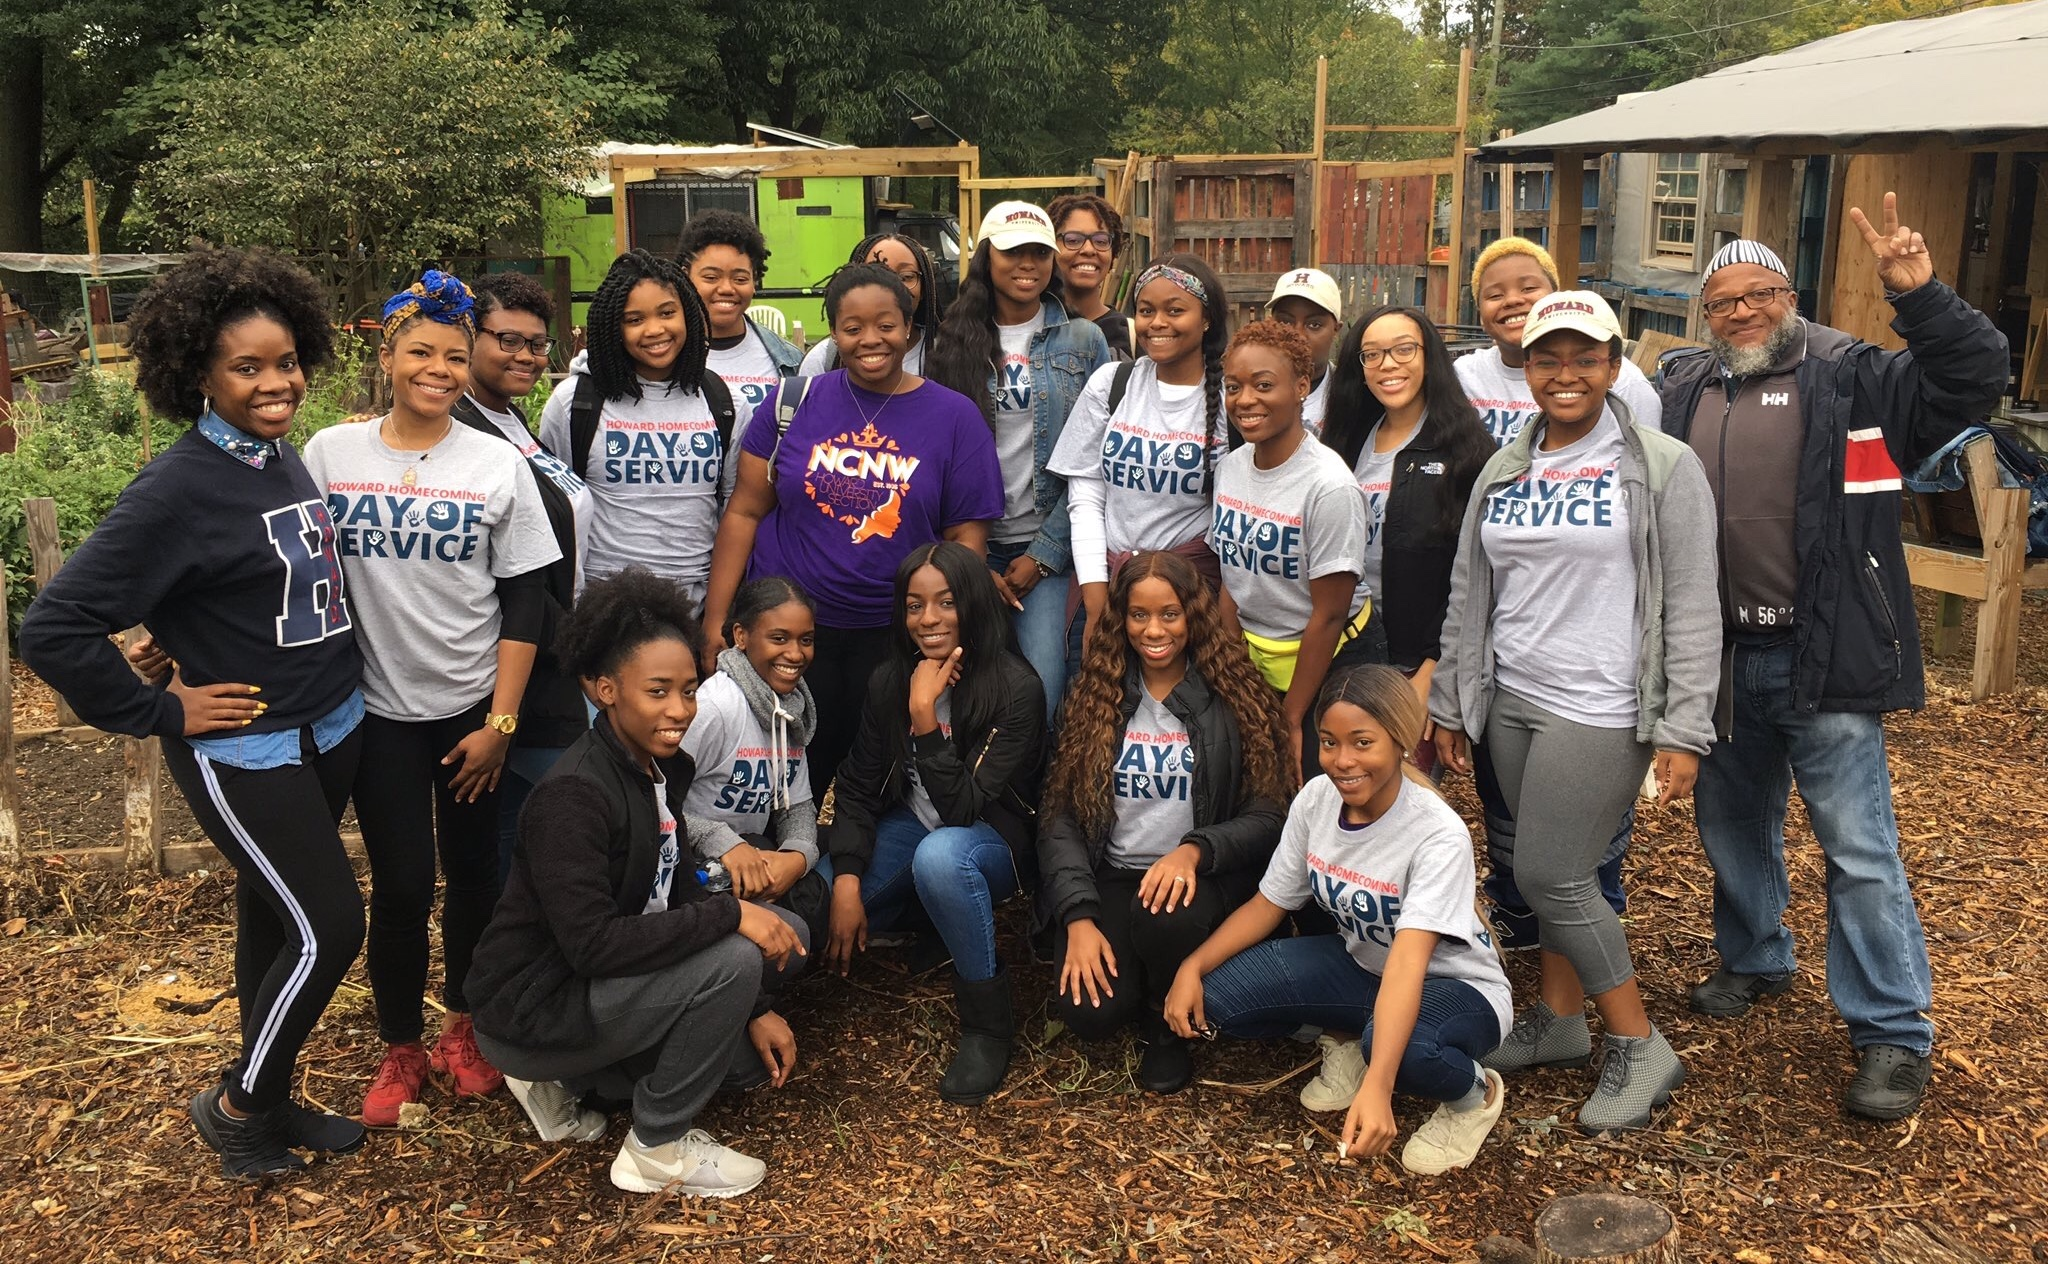 Howard University Homecoming Day of Service: Students Give Back To The Community